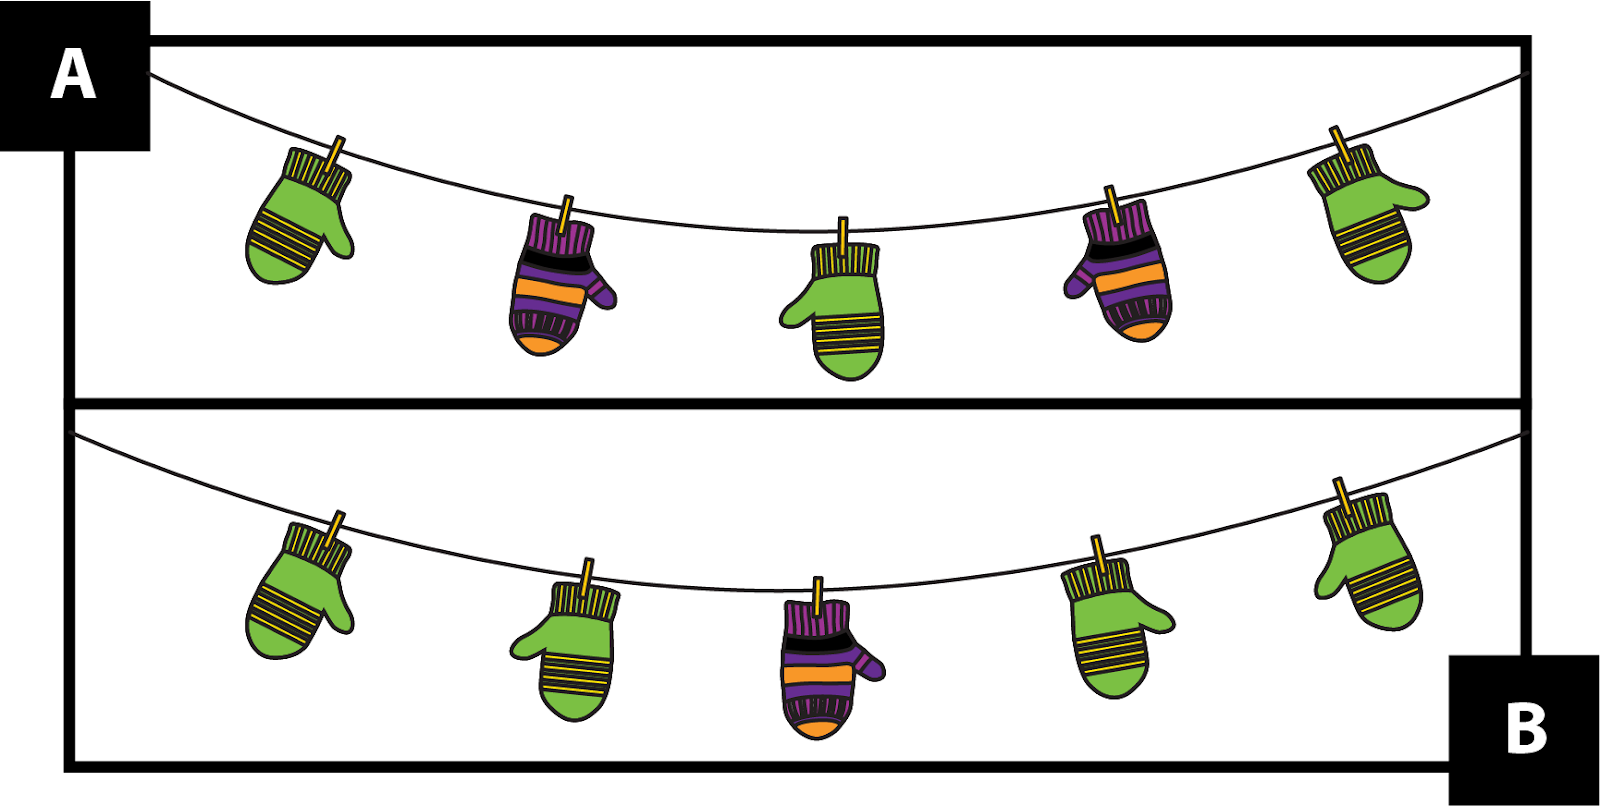 A. shows 5 mittens on a string. 3 are green. 2 are purple with orange stripes. The colors go green, purple, green, purple, green. B. shows 5 mittens on a string. 4 are green. 1 is purple with orange stripes. The colors go green, green, purple, green, green. The green mittens next to each other look like pairs.